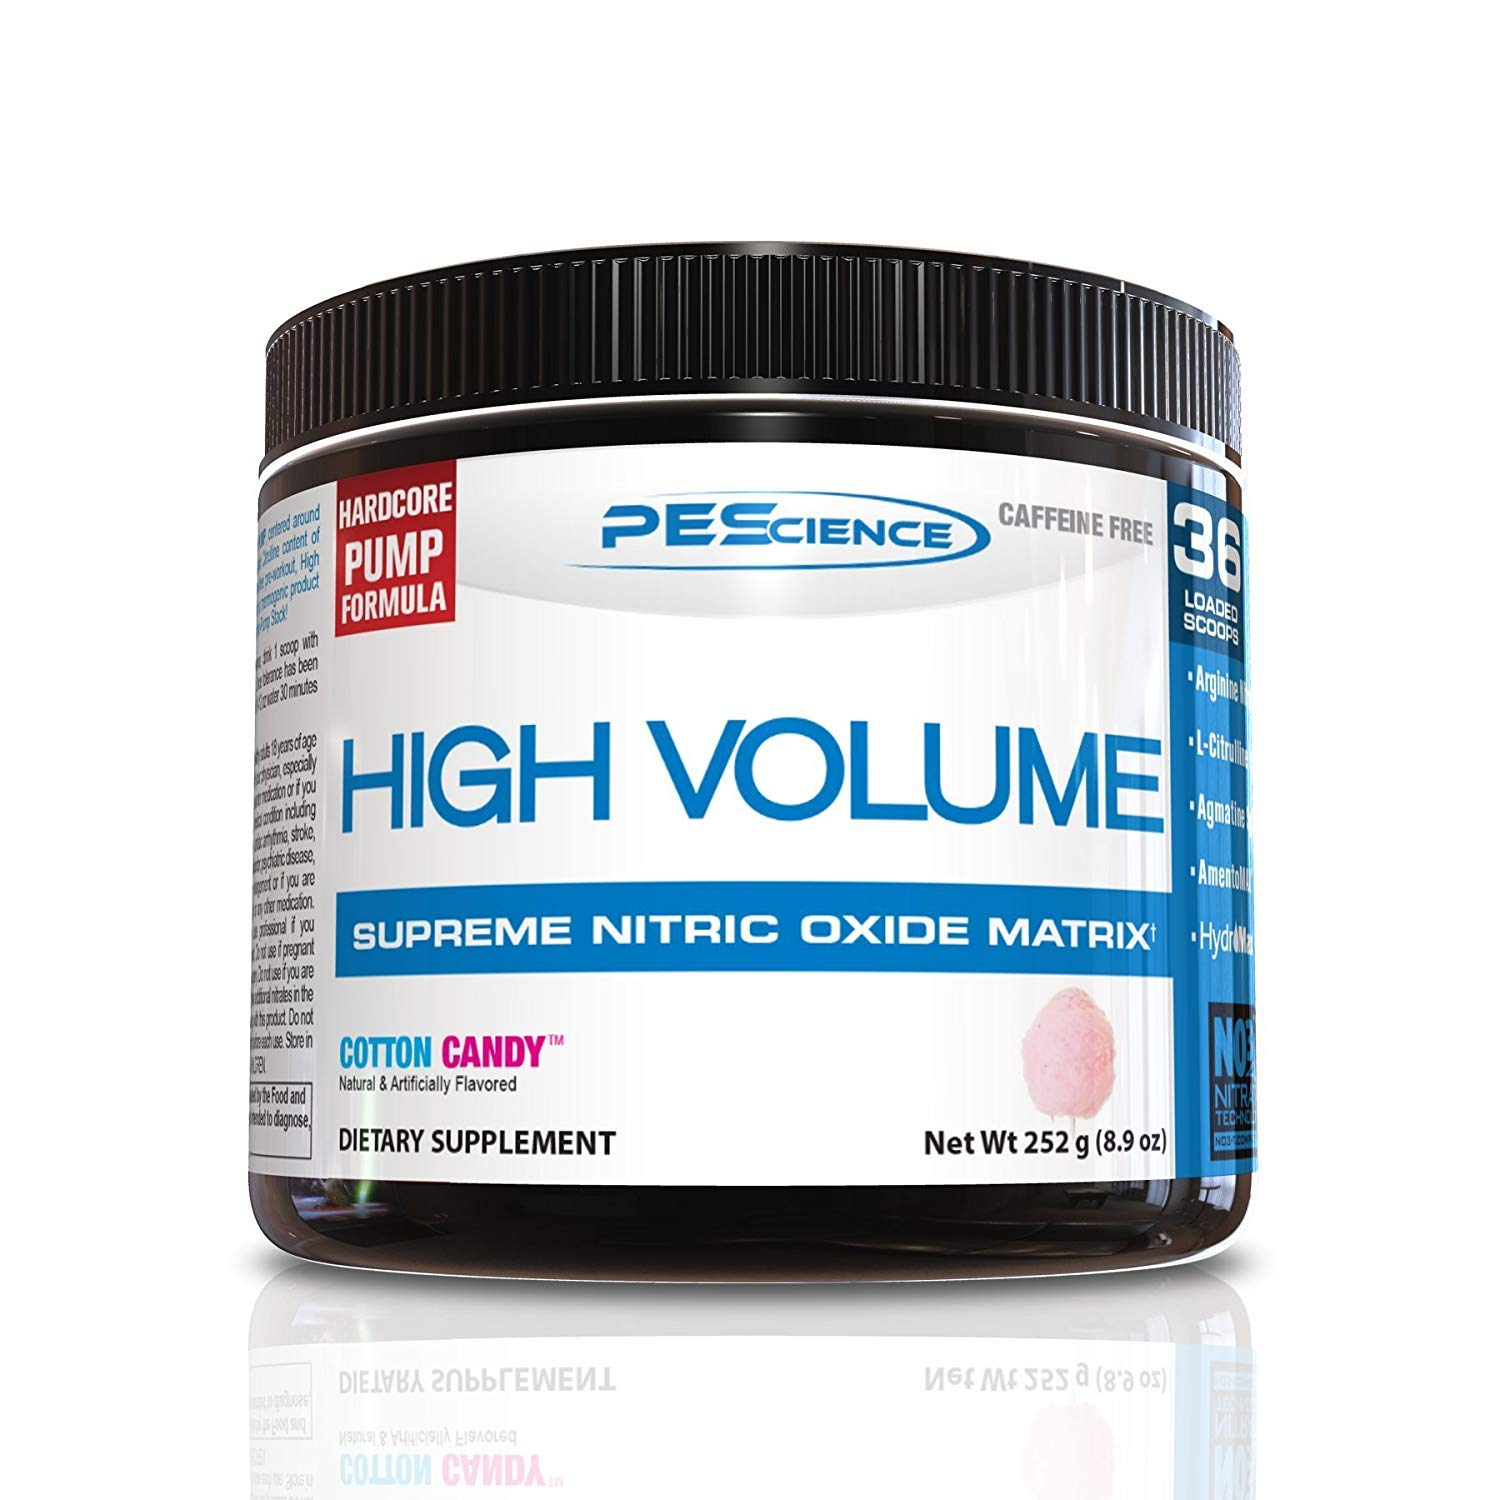 PEScience High Volume, Cotton Candy, 36 Scoops (Pack of 2), Caffeine-Free Preworkout